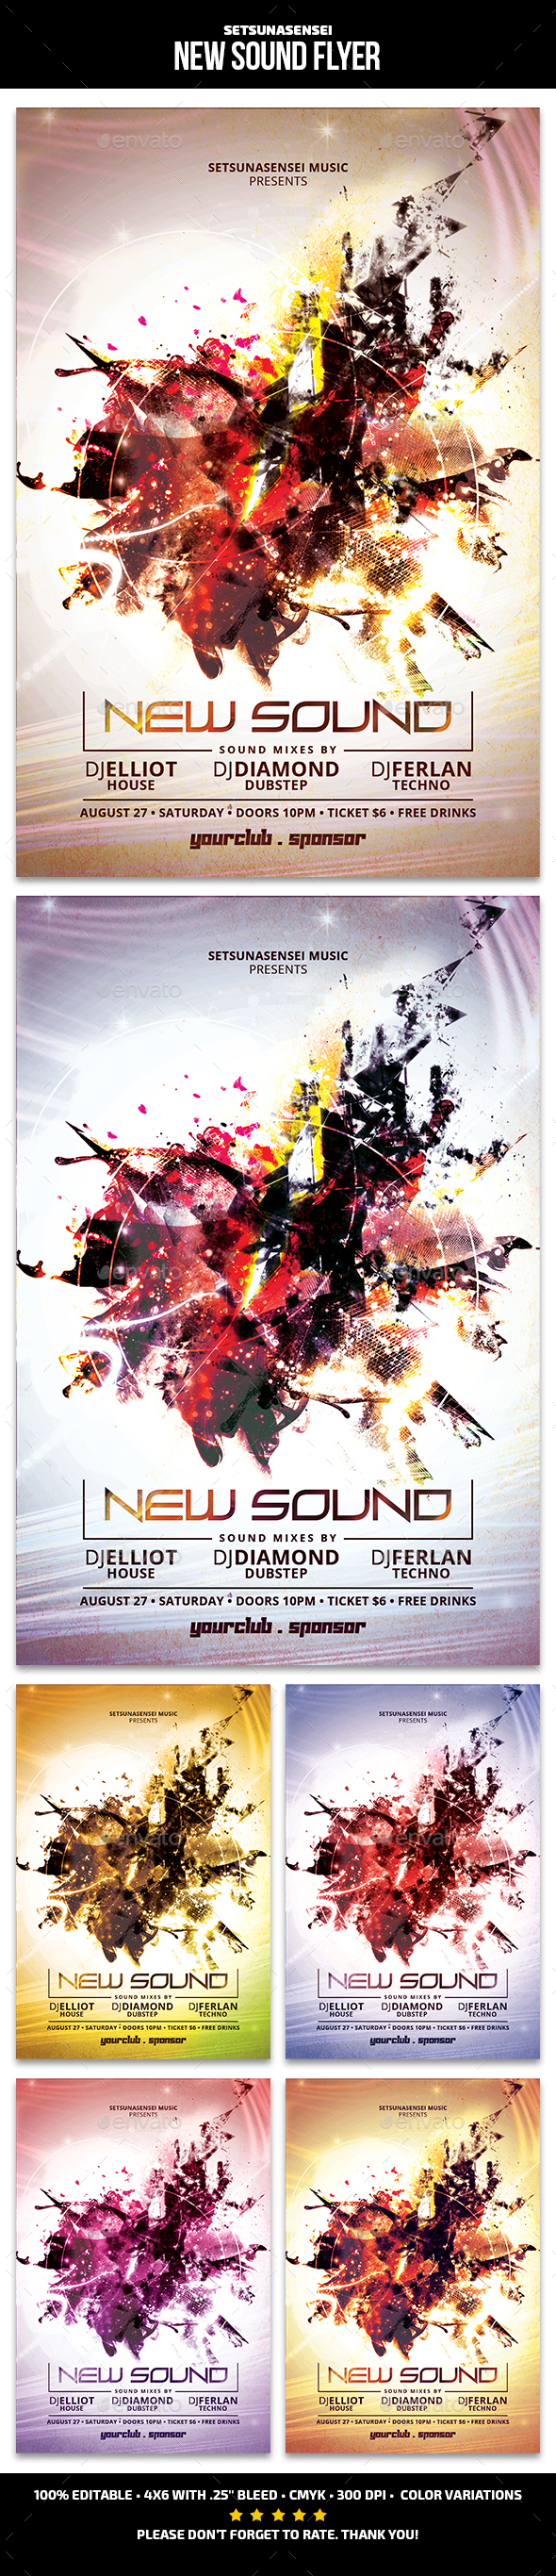 New Sound Flyer - Clubs & Parties Events